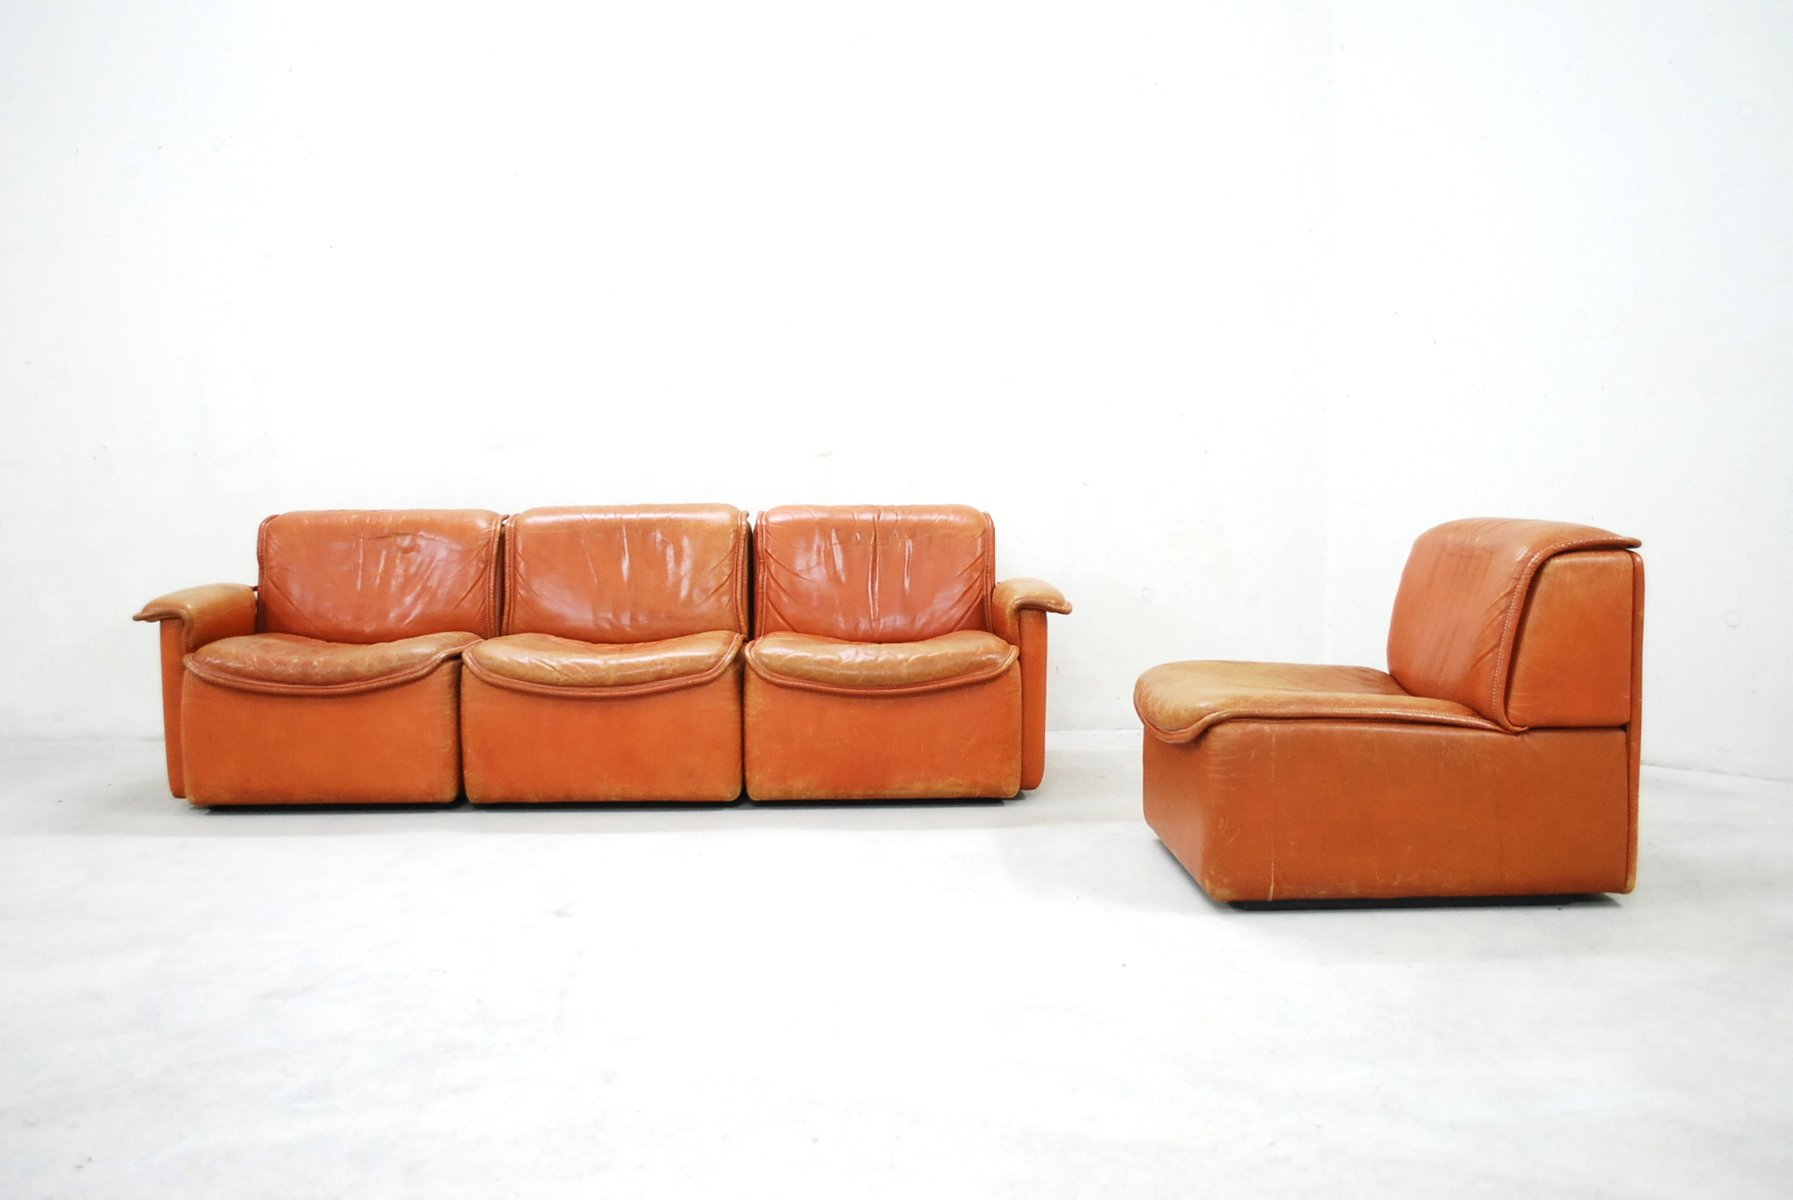 cognac leather sofa vintage english cognac leather. Black Bedroom Furniture Sets. Home Design Ideas